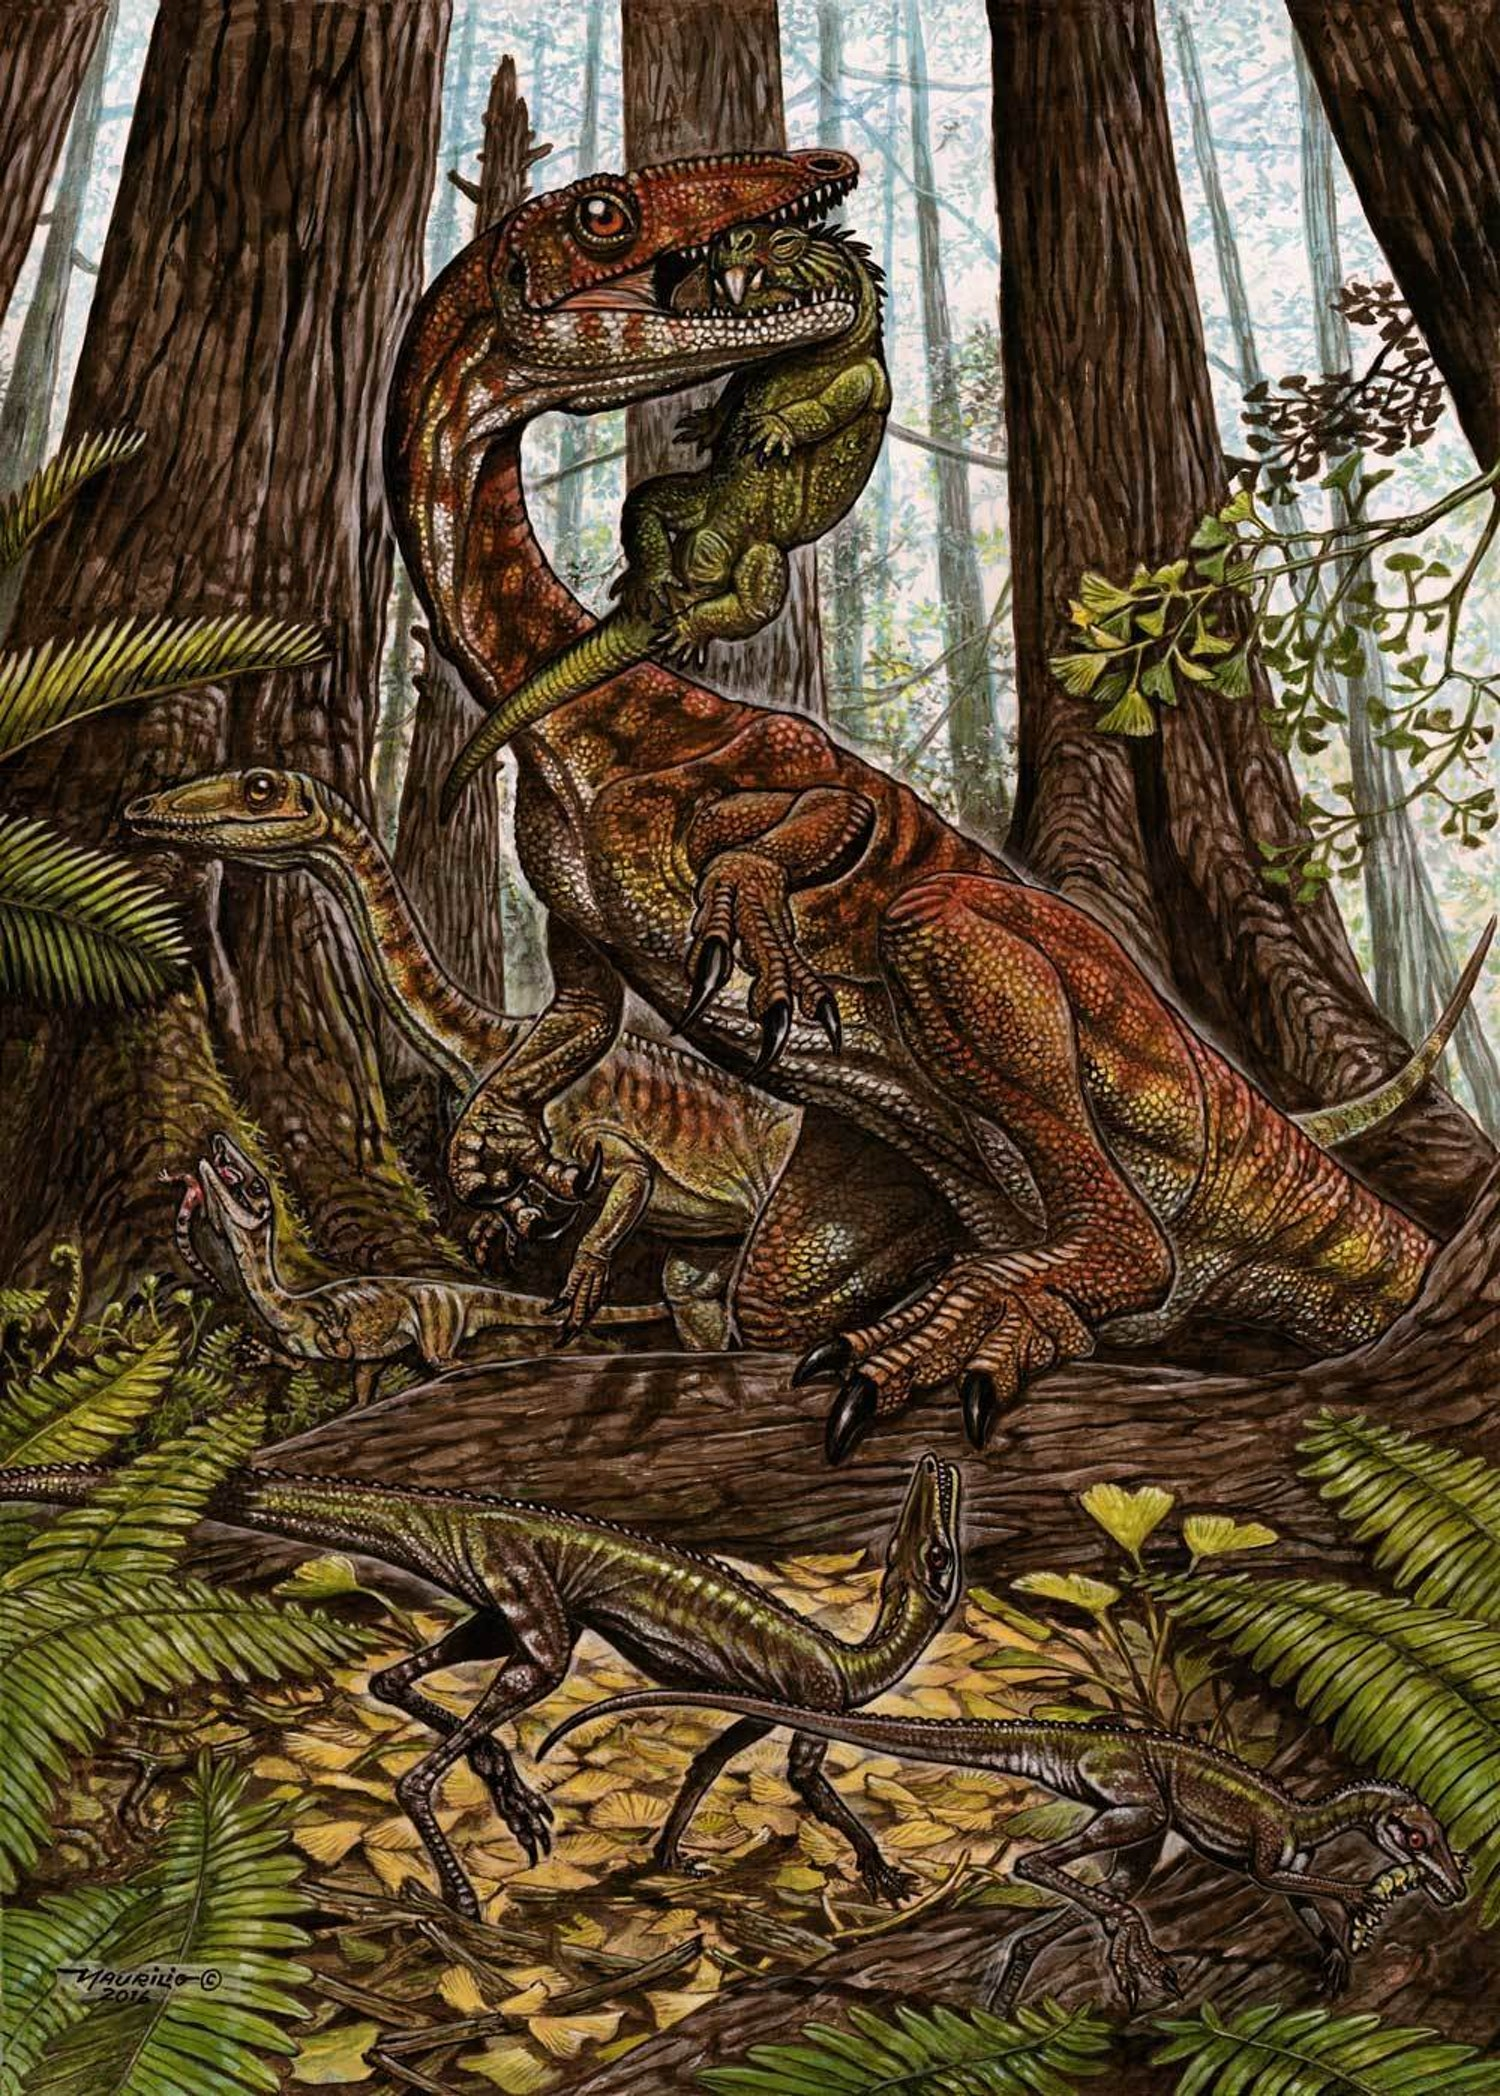 This illustration shows a group of three Buriolestes schultzi (top), one with a small rhynchosaur in its mouth and the one on the back (a juvenile) with a lizard. Below is a pair of Ixalerpeton polesinensis, one of which grabs a caterpillar. All depicted on a forested Triassic landscape.